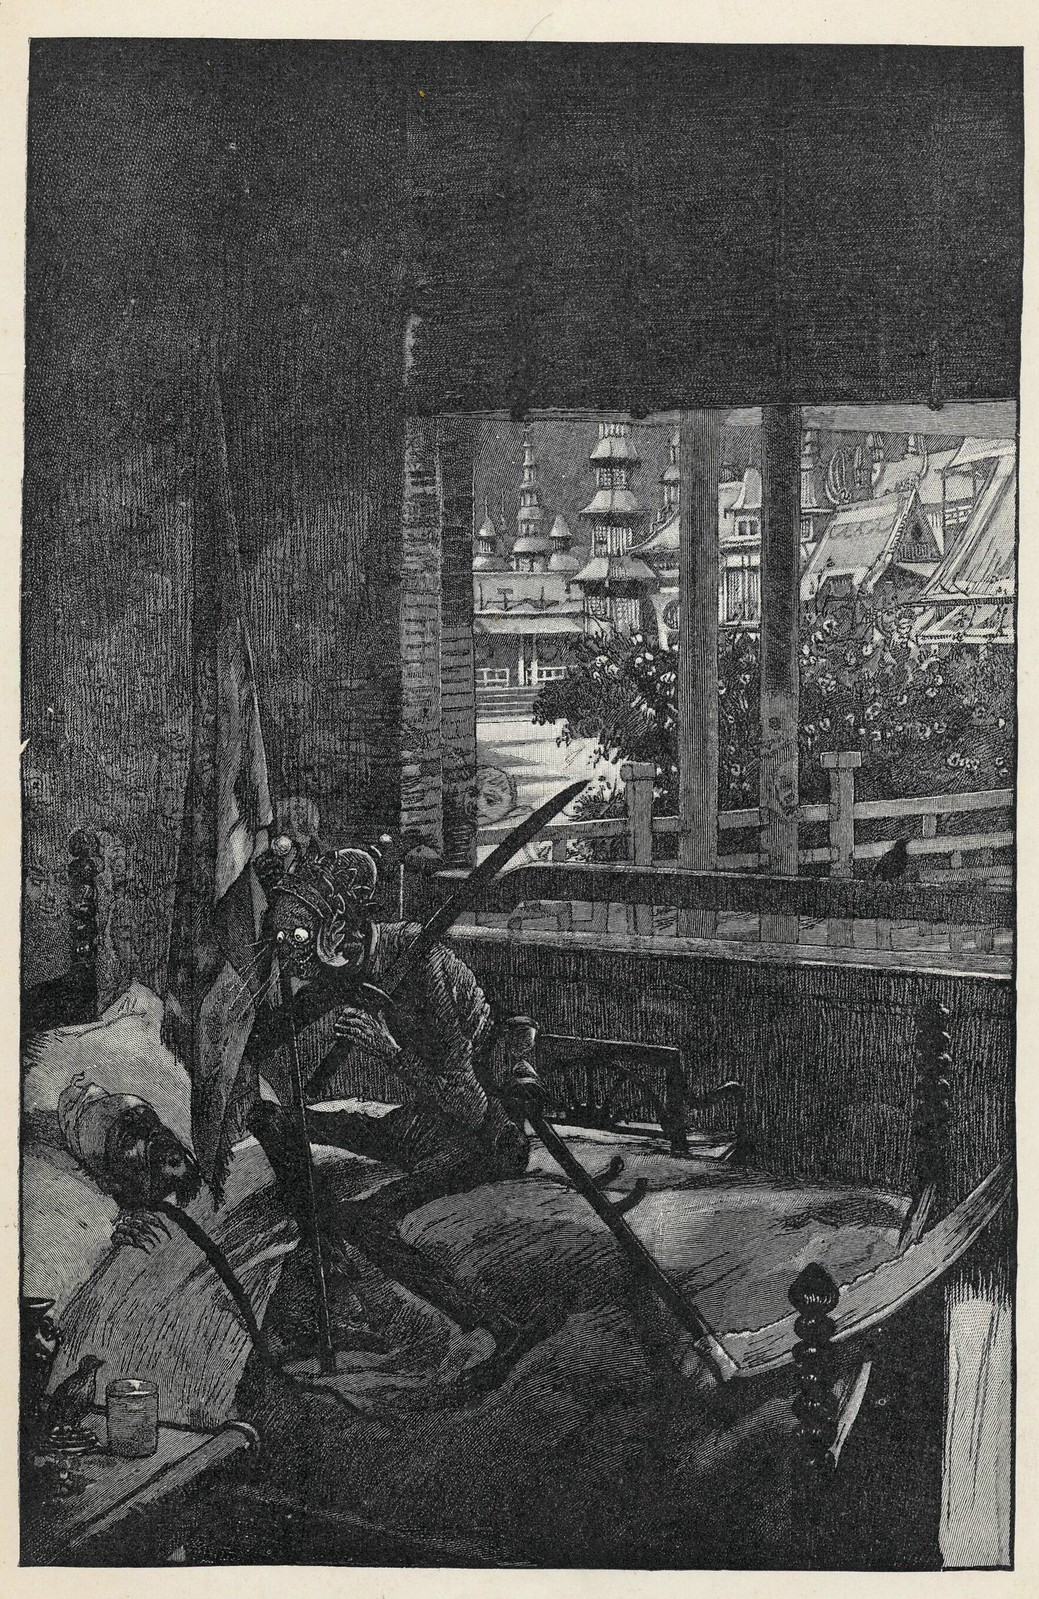 """Hans Tegner - """"The emperor felt as if some one was sitting on his chest. He opened his eyes, and then he saw it was Death."""" from Fairy tales and stories, by Hans Christian Andersen, New York, 1900"""